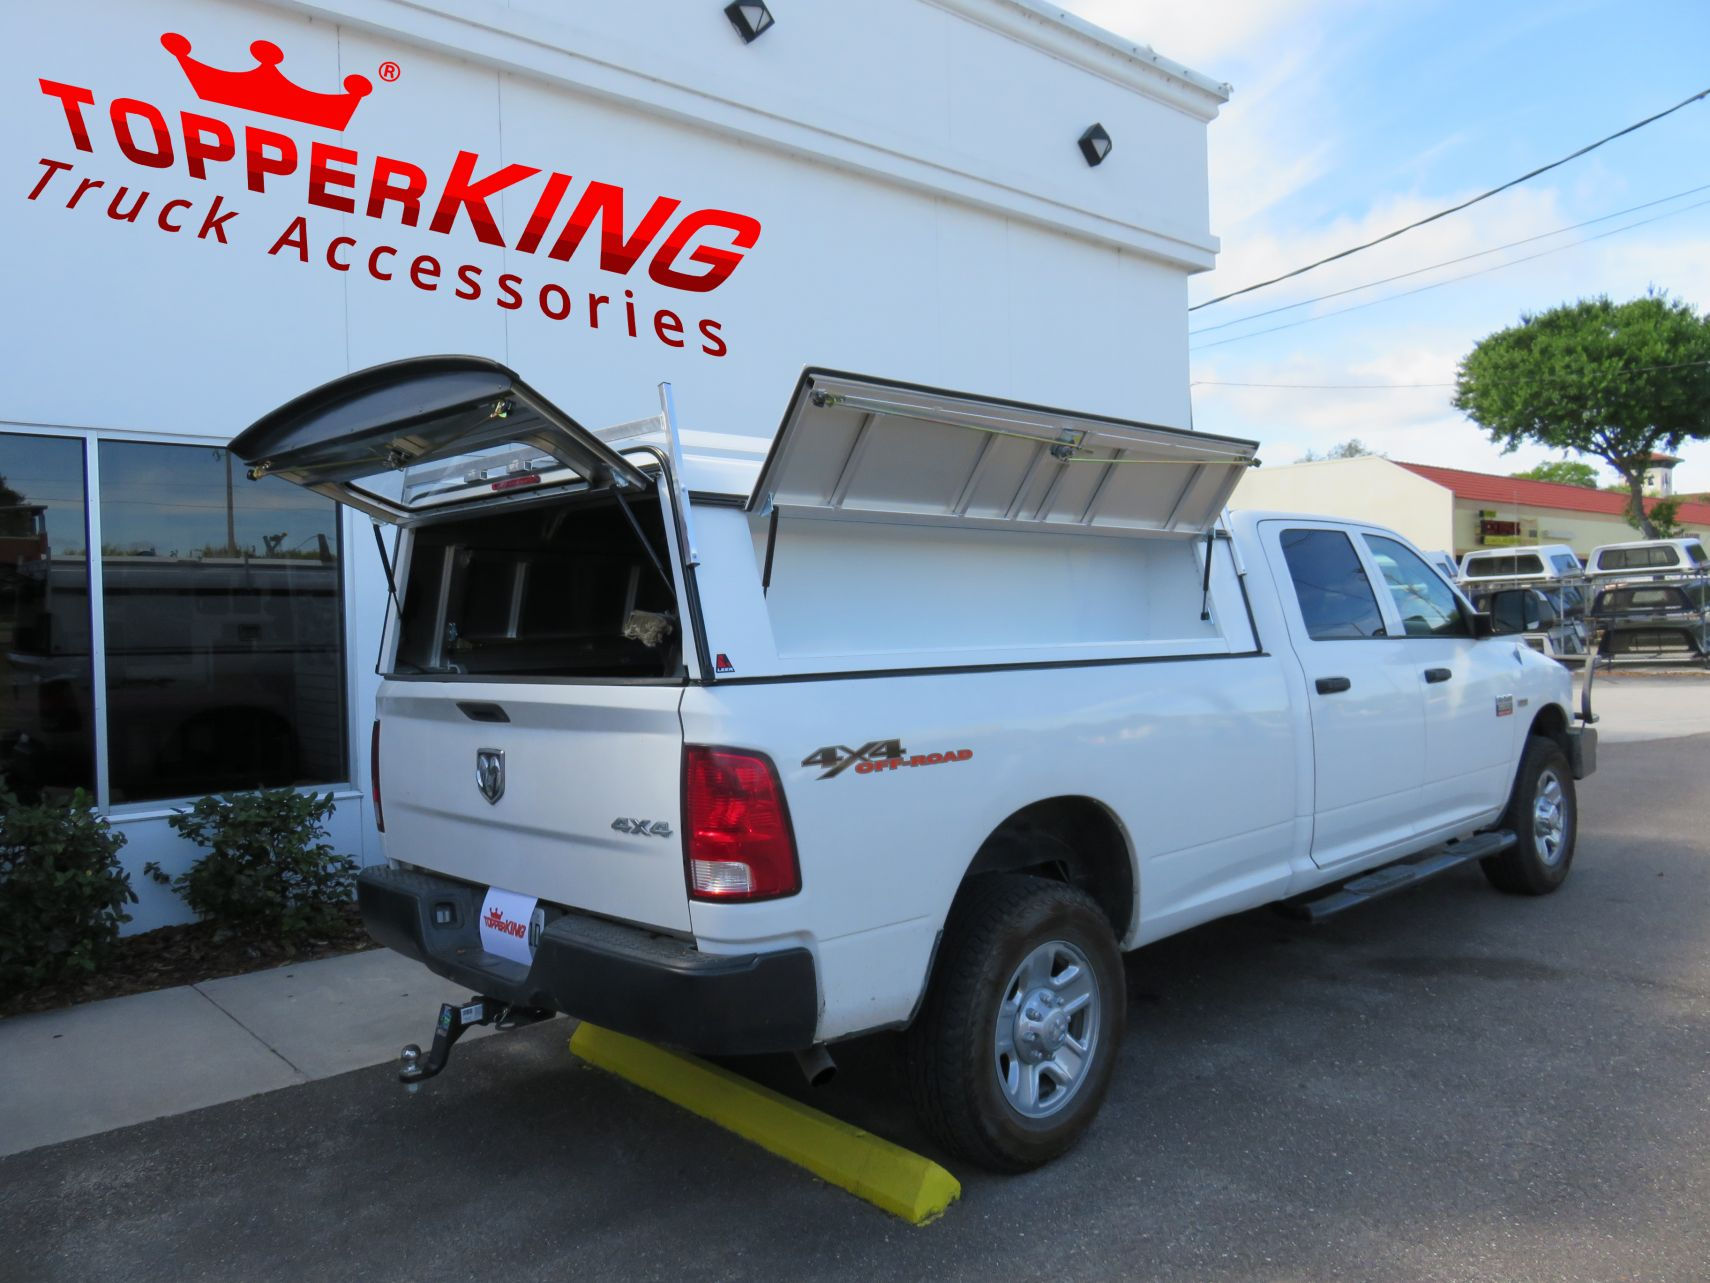 Dodge Ram Leer Dcc Commercial Topper Driven To Work Topperking Topperking Providing All Of Tampa Bay With Quality Truck Accessories